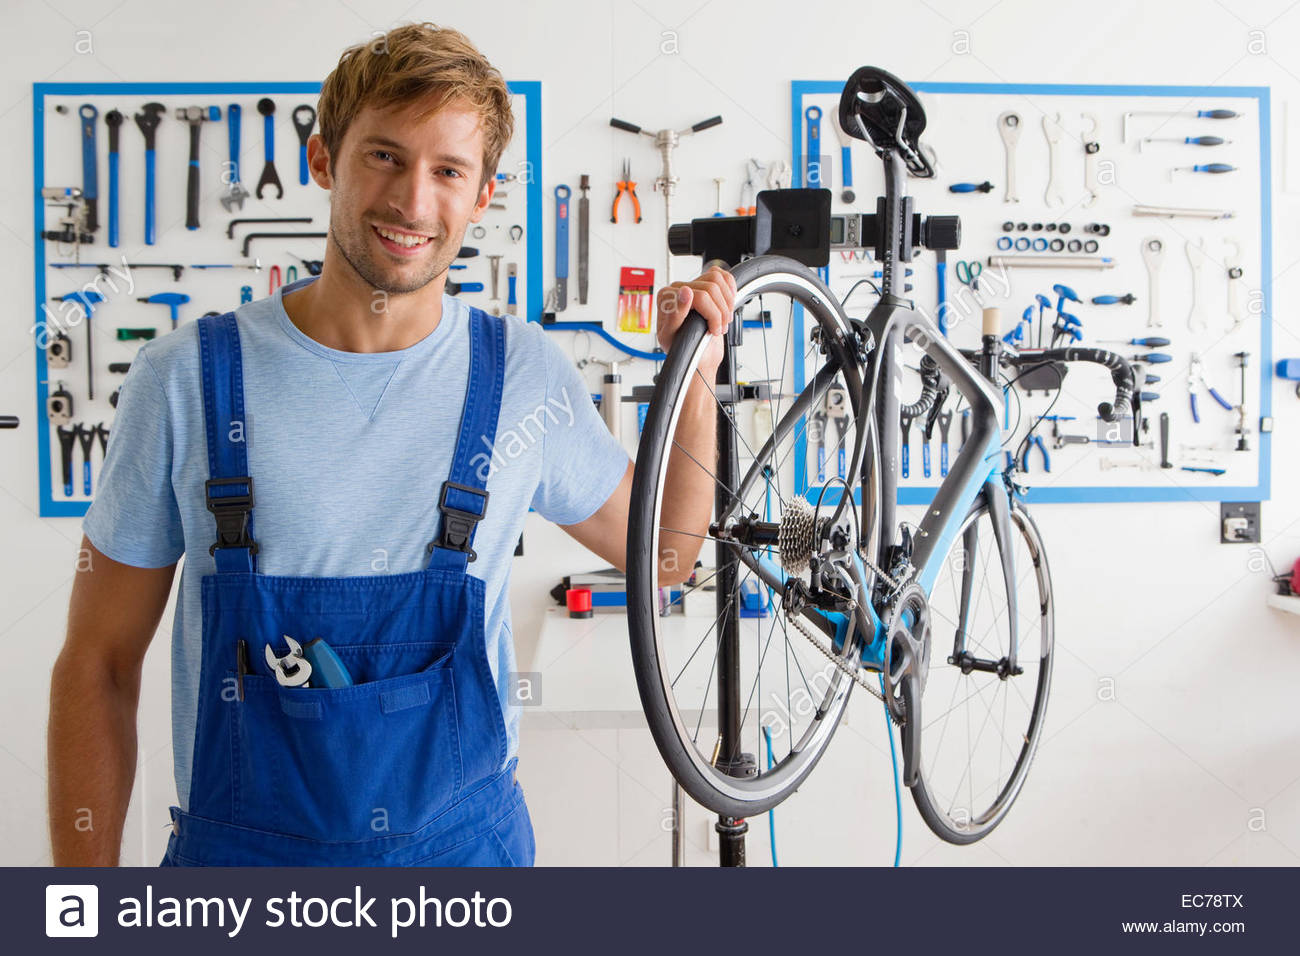 Technicien Cycle in workshop Photo Stock